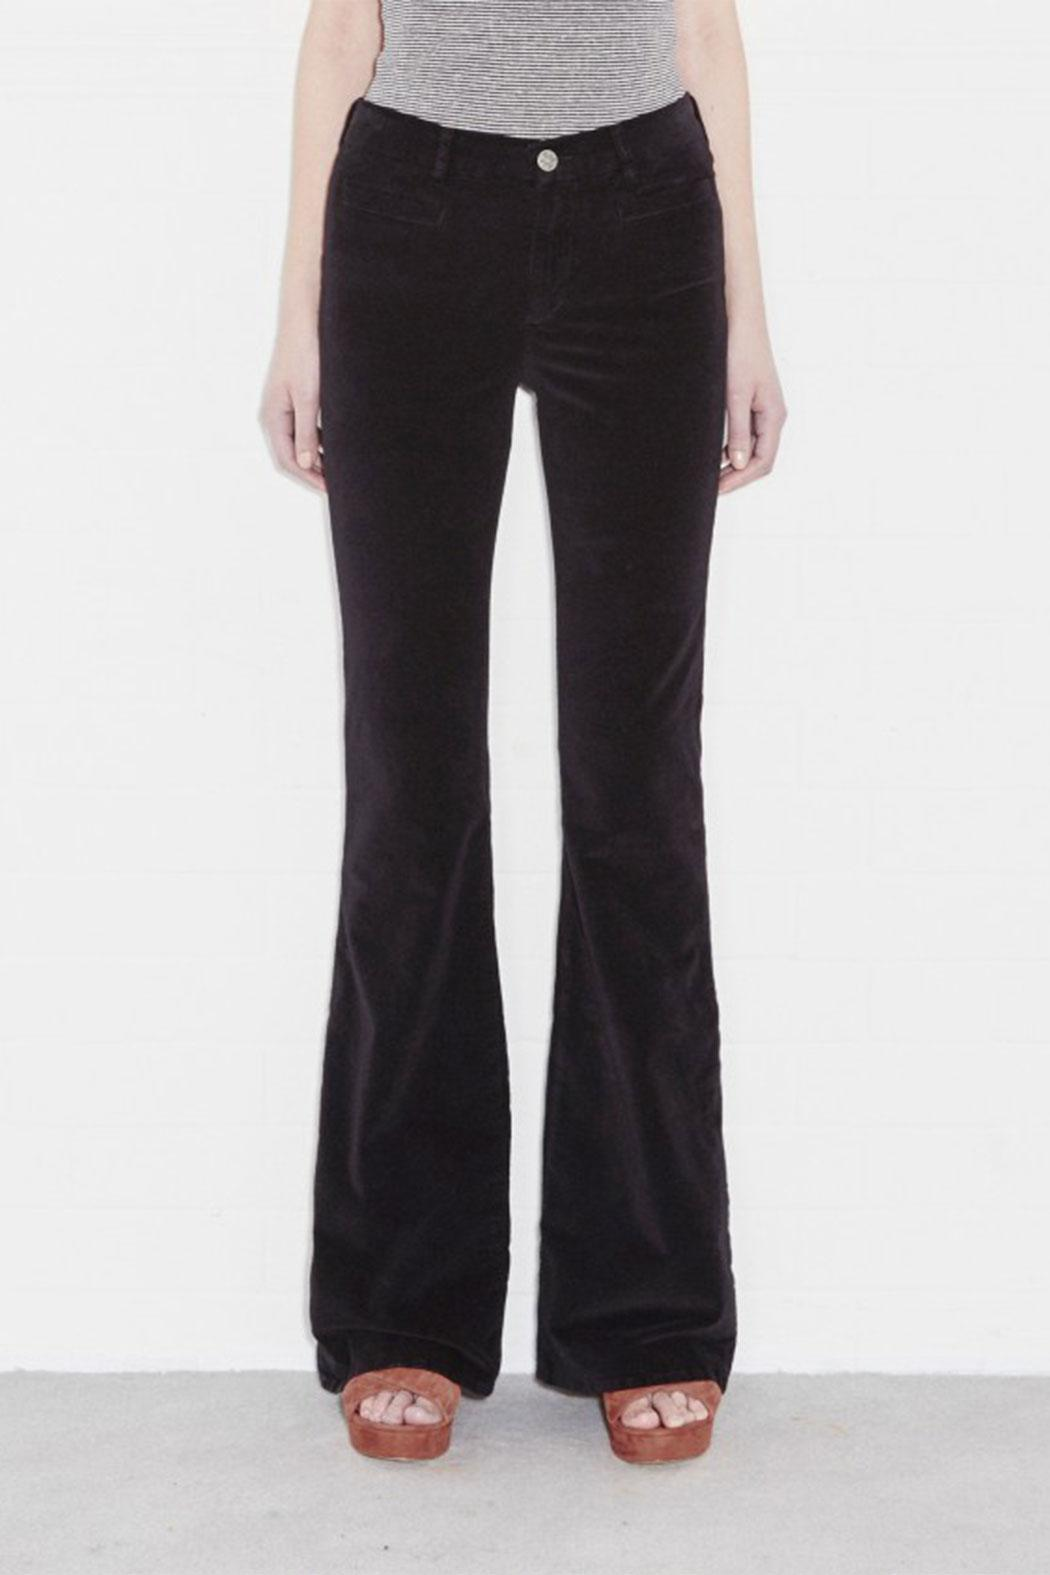 MiH Jeans Velvet Flare Jeans from Italy by Au cabaret vert Milano ...